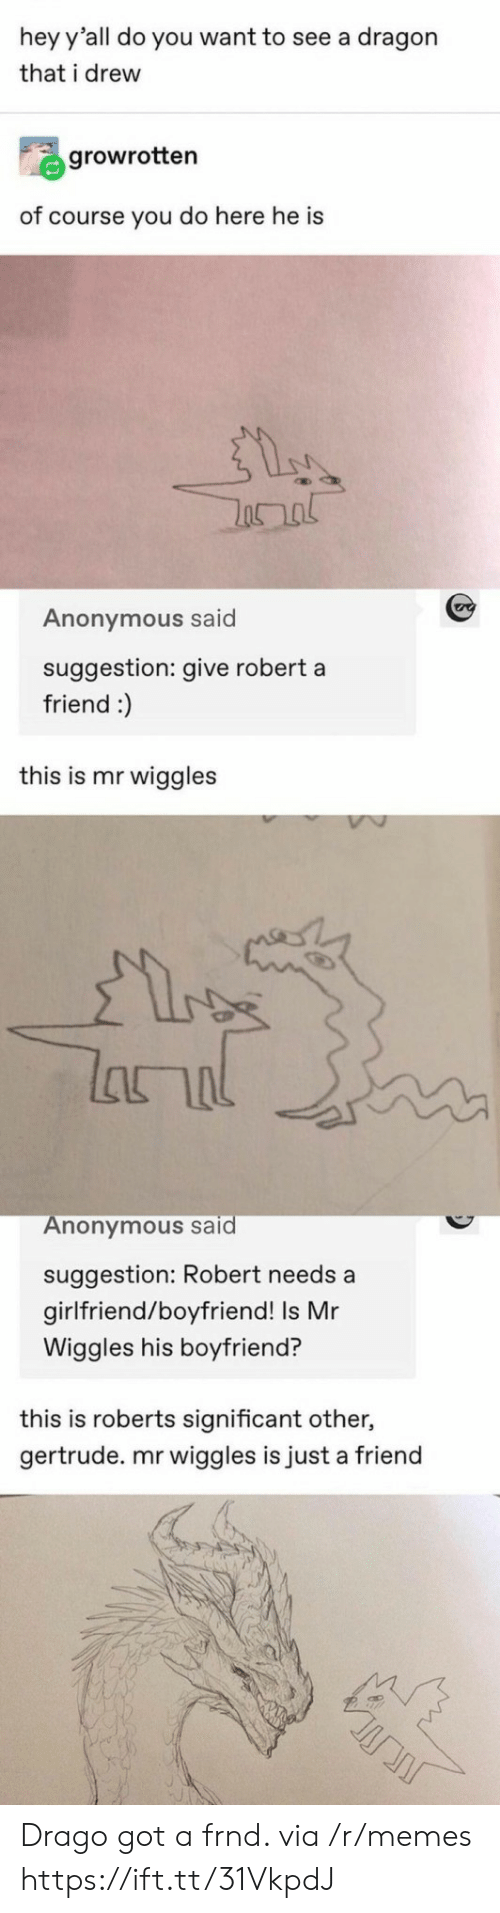 significant: hey y'all do you want to see a dragon  that i drew  growrotten  of course you do here he is  Anonymous said  suggestion: give robert a  friend :)  this is mr wiggles  lanal  Anonymous said  suggestion: Robert needs a  girlfriend/boyfriend! Is Mr  Wiggles his boyfriend?  this is roberts significant other,  gertrude. mr wiggles is just a friend Drago got a frnd. via /r/memes https://ift.tt/31VkpdJ